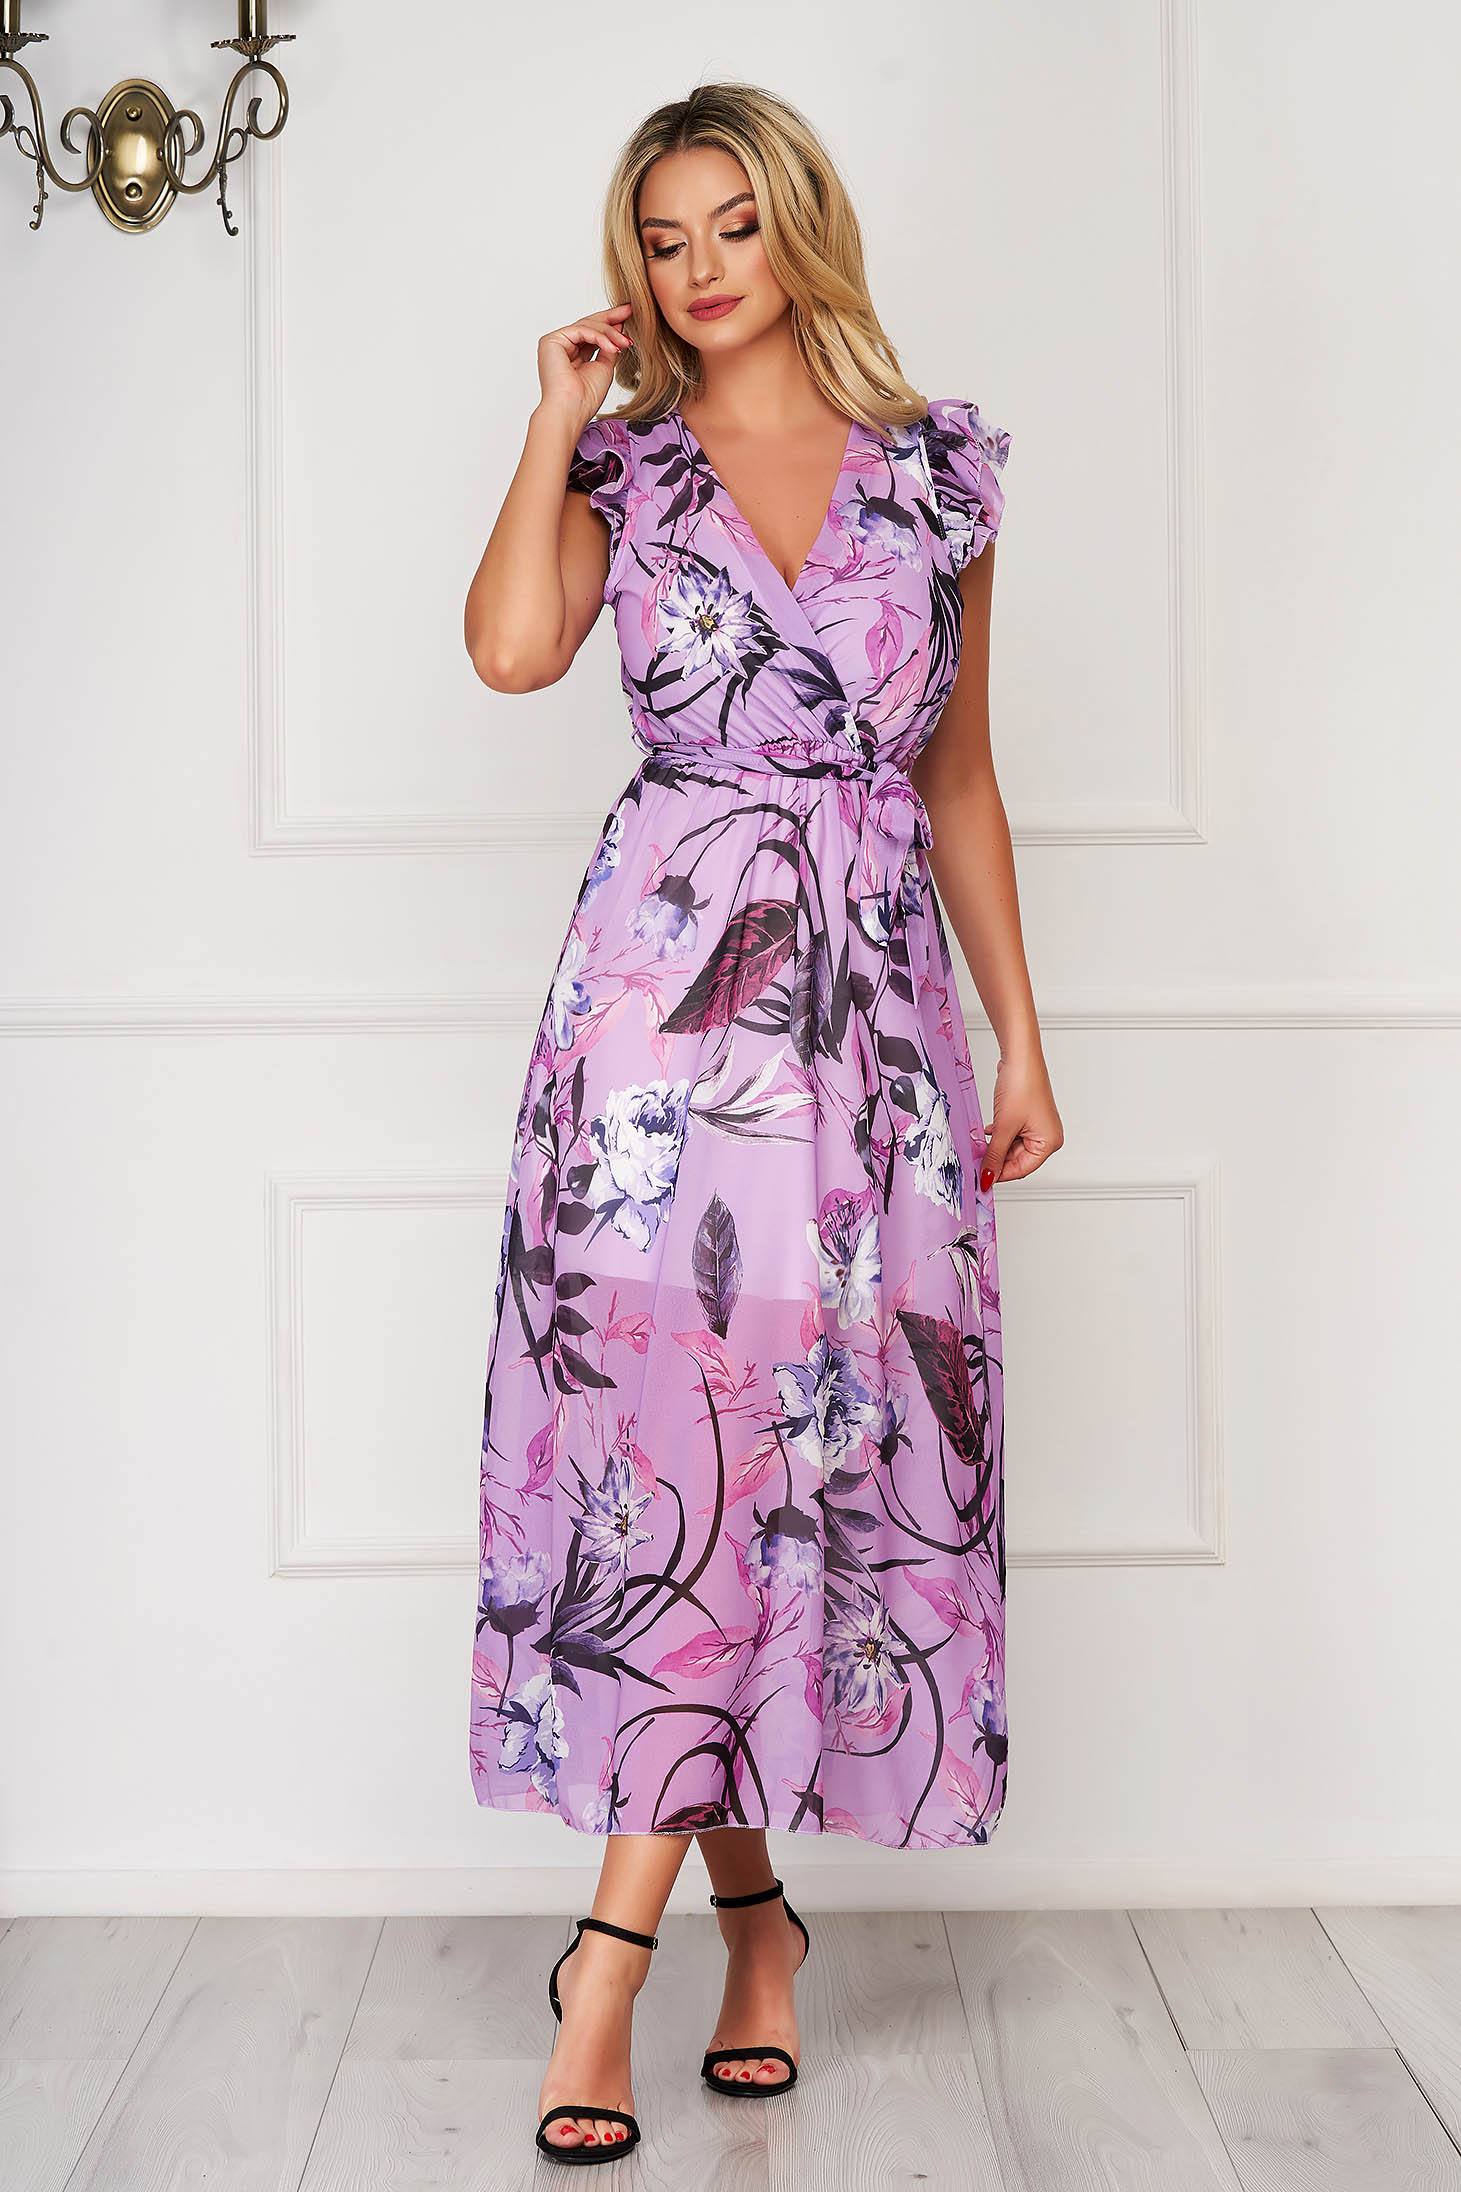 StarShinerS lila dress daily long from veil fabric with floral print accessorized with tied waistband with ruffled sleeves